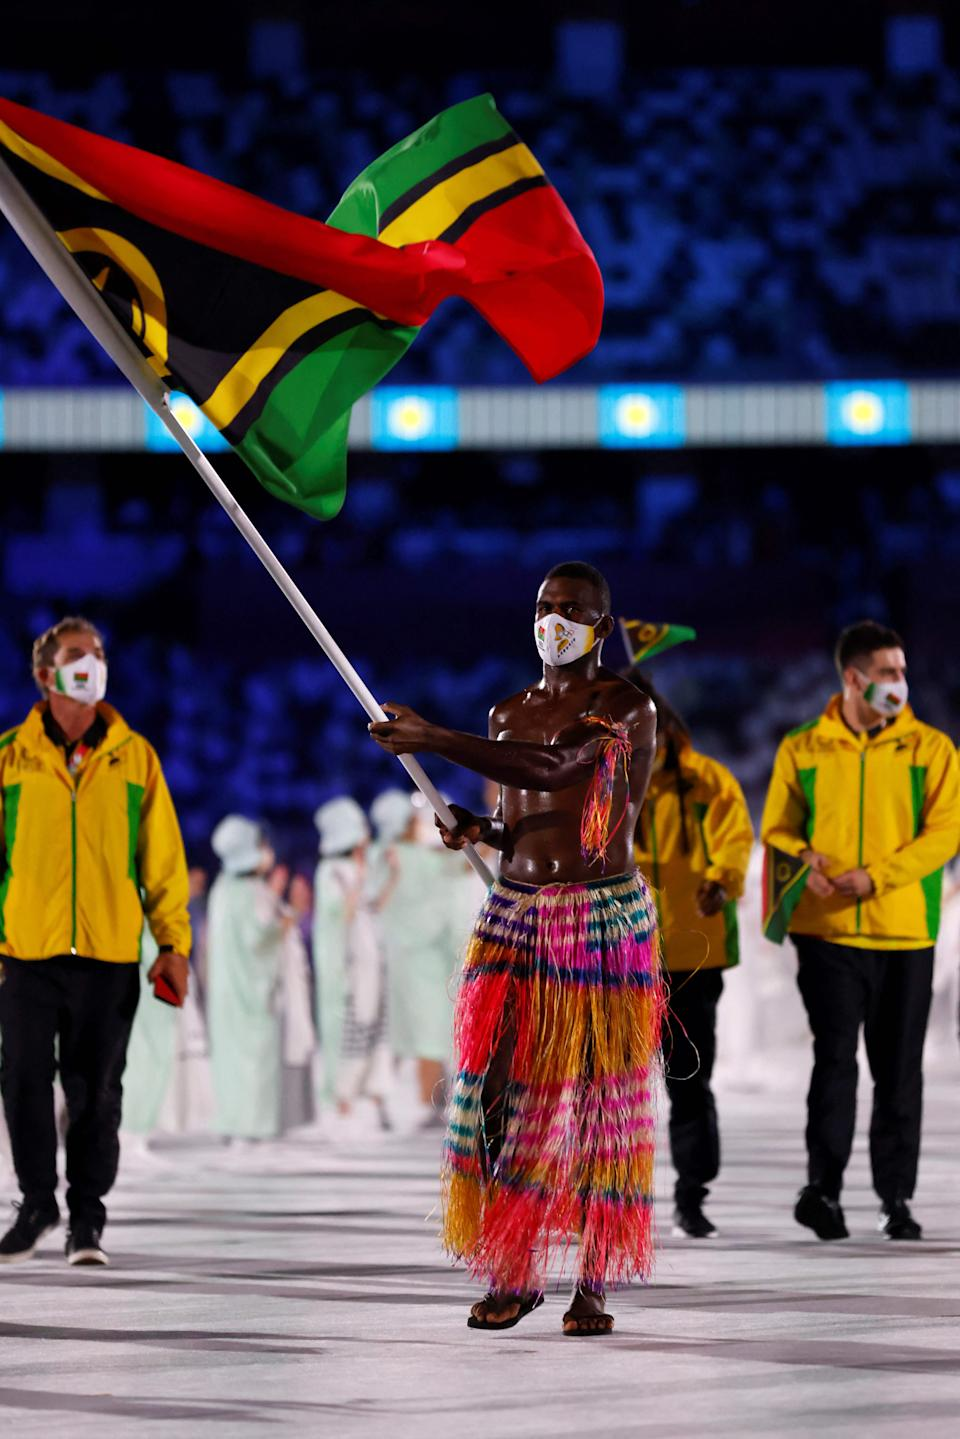 <p>Vanautu's flag bearer Riilio Rii parades during the opening ceremony of the Tokyo 2020 Olympic Games, at the Olympic Stadium, in Tokyo, on July 23, 2021. (Photo by Odd ANDERSEN / AFP) (Photo by ODD ANDERSEN/AFP via Getty Images)</p>